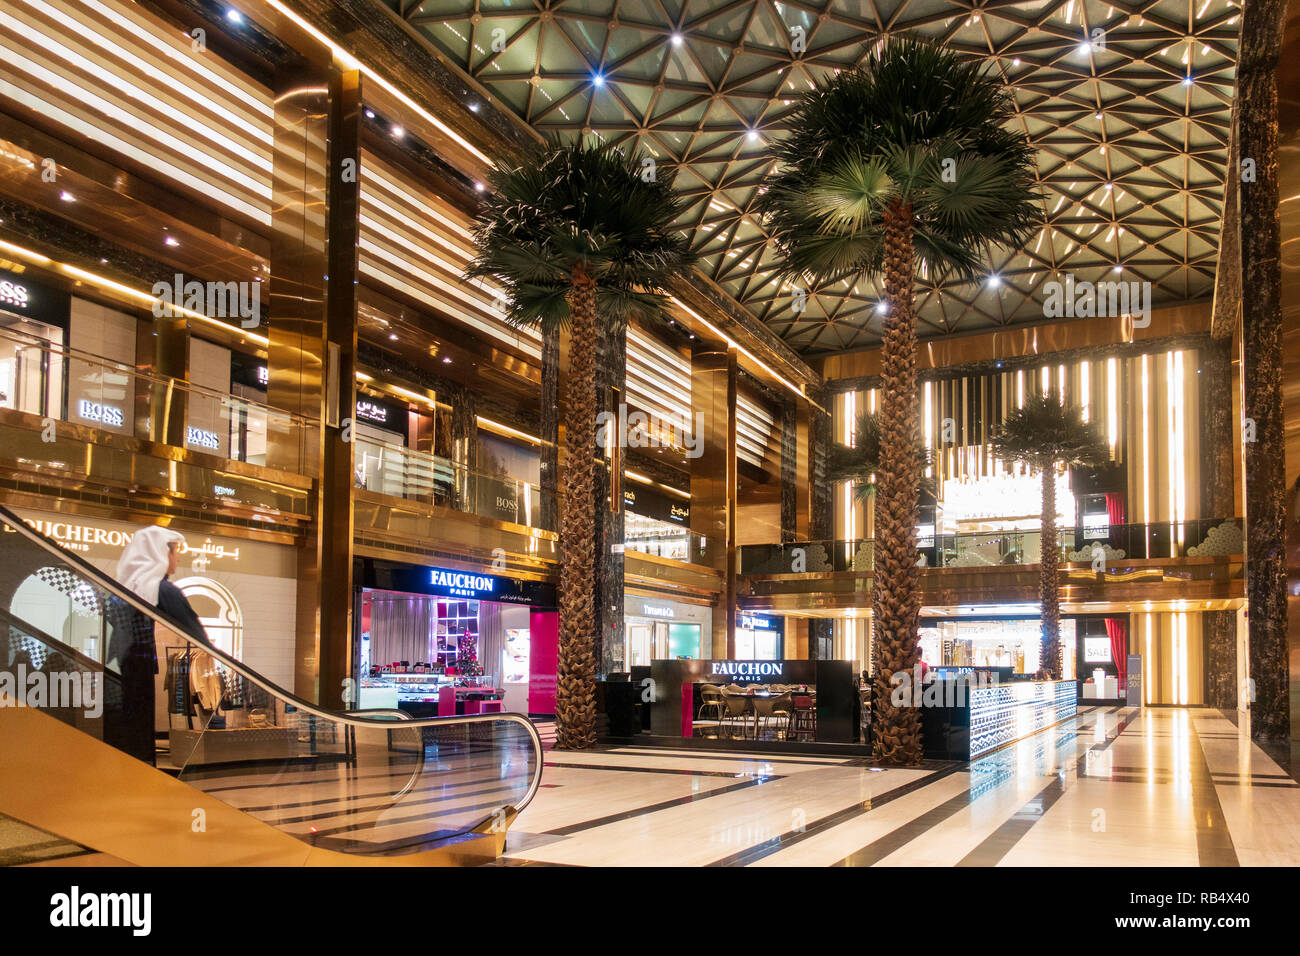 Interior of new Prestige luxury arcade with high-end boutiques inside The Avenues shopping mall in Kuwait City, Kuwait - Stock Image